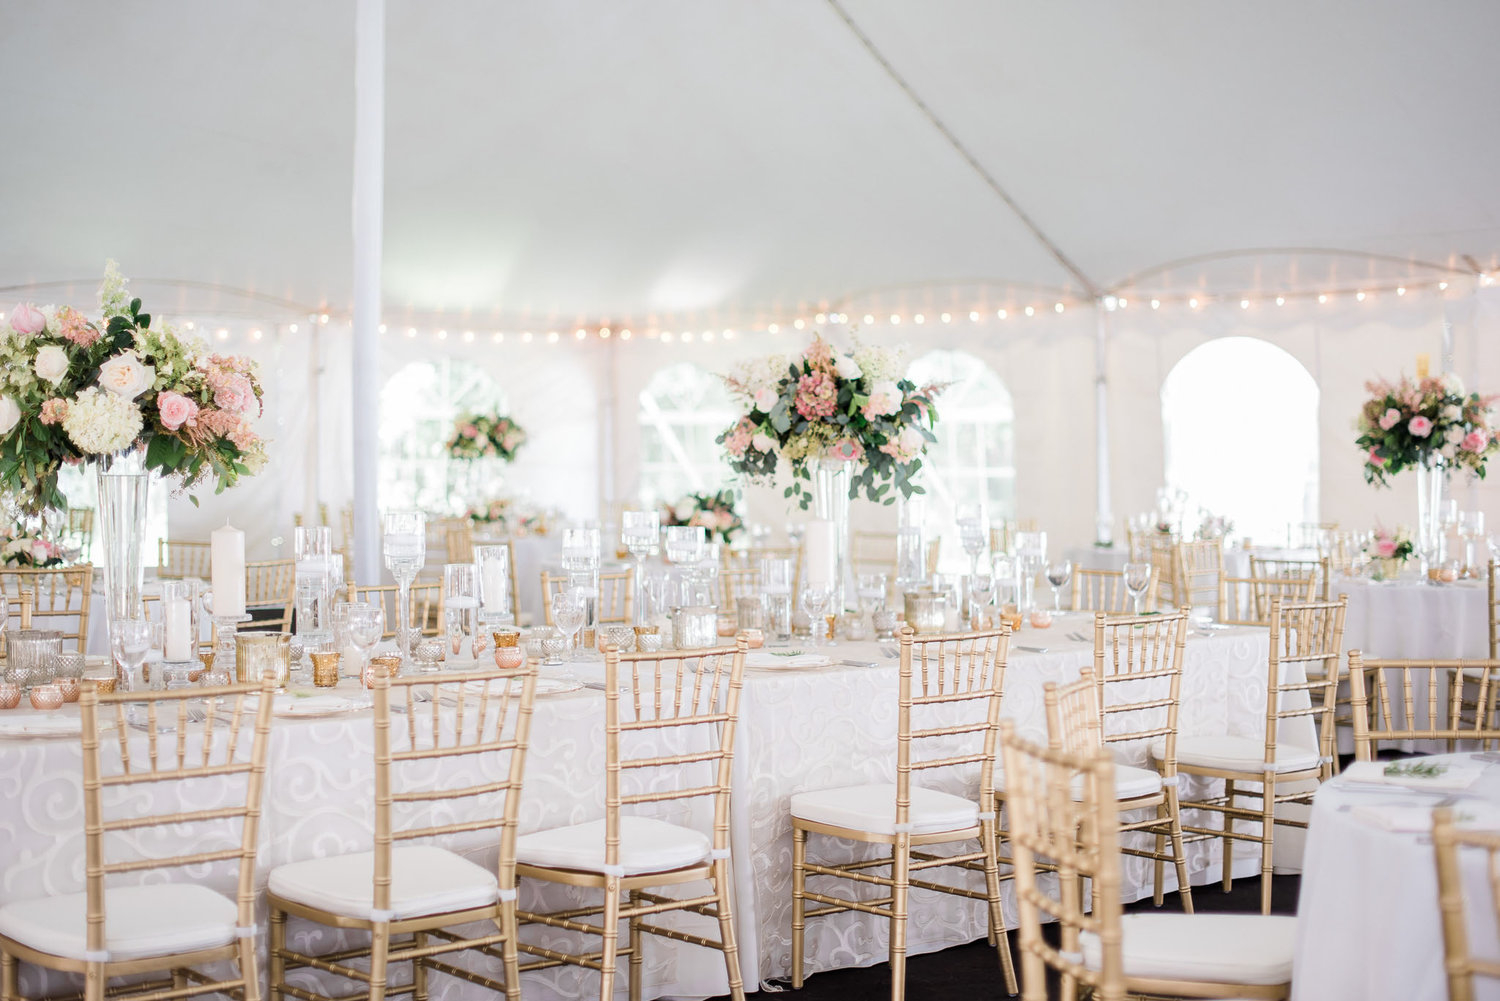 Gold Chiavari chairs at a white and blush tent wedding reception with raised flower arrangements on the tables.